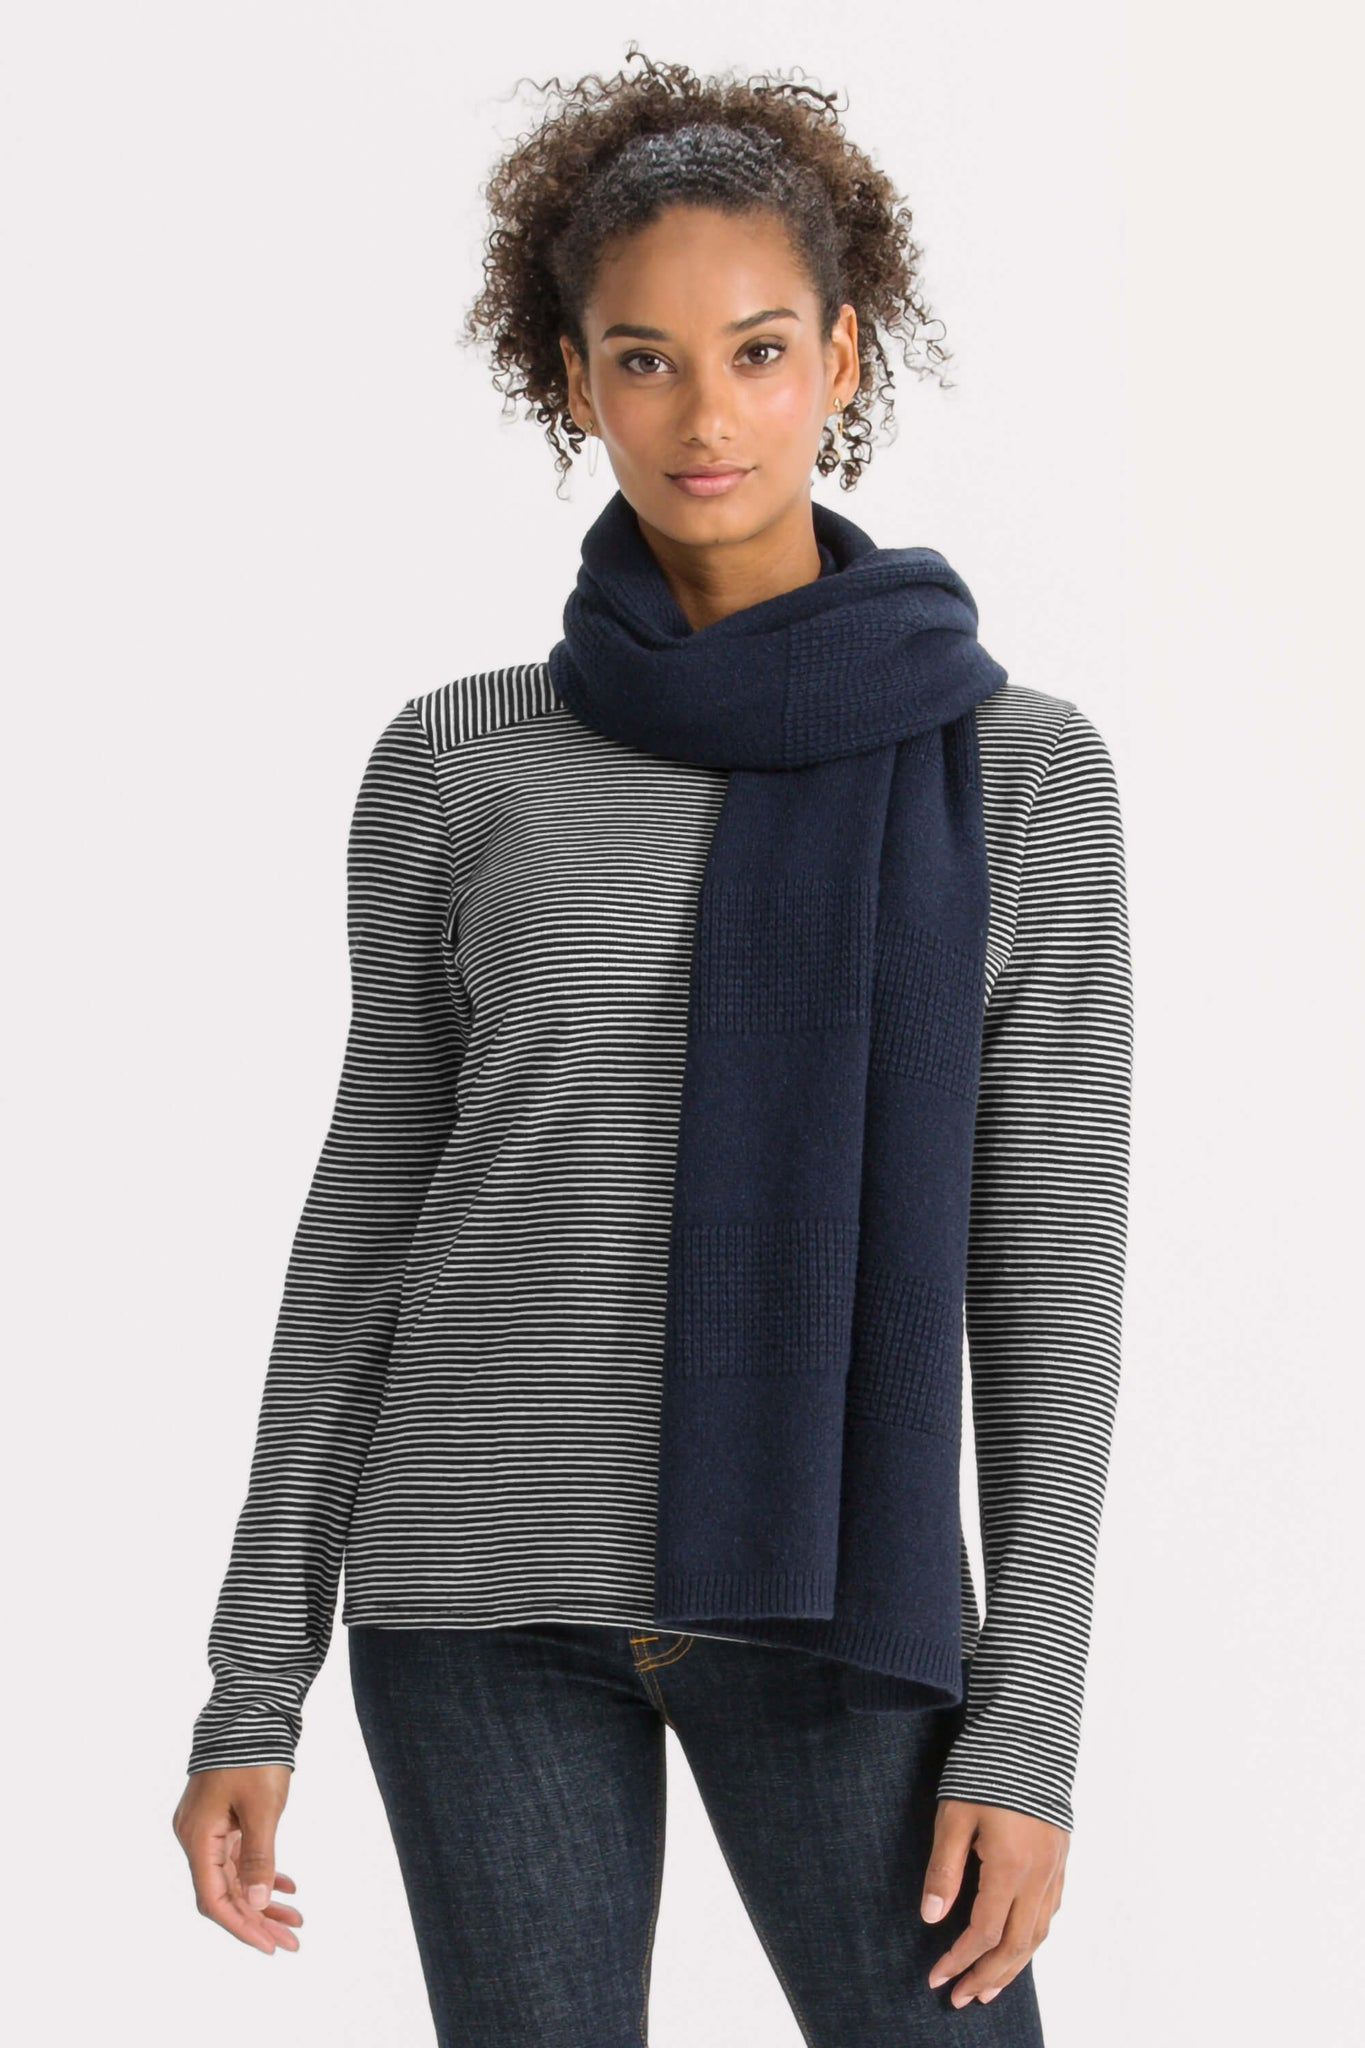 Unisex Courchevel oversized knit scarf - navy heather